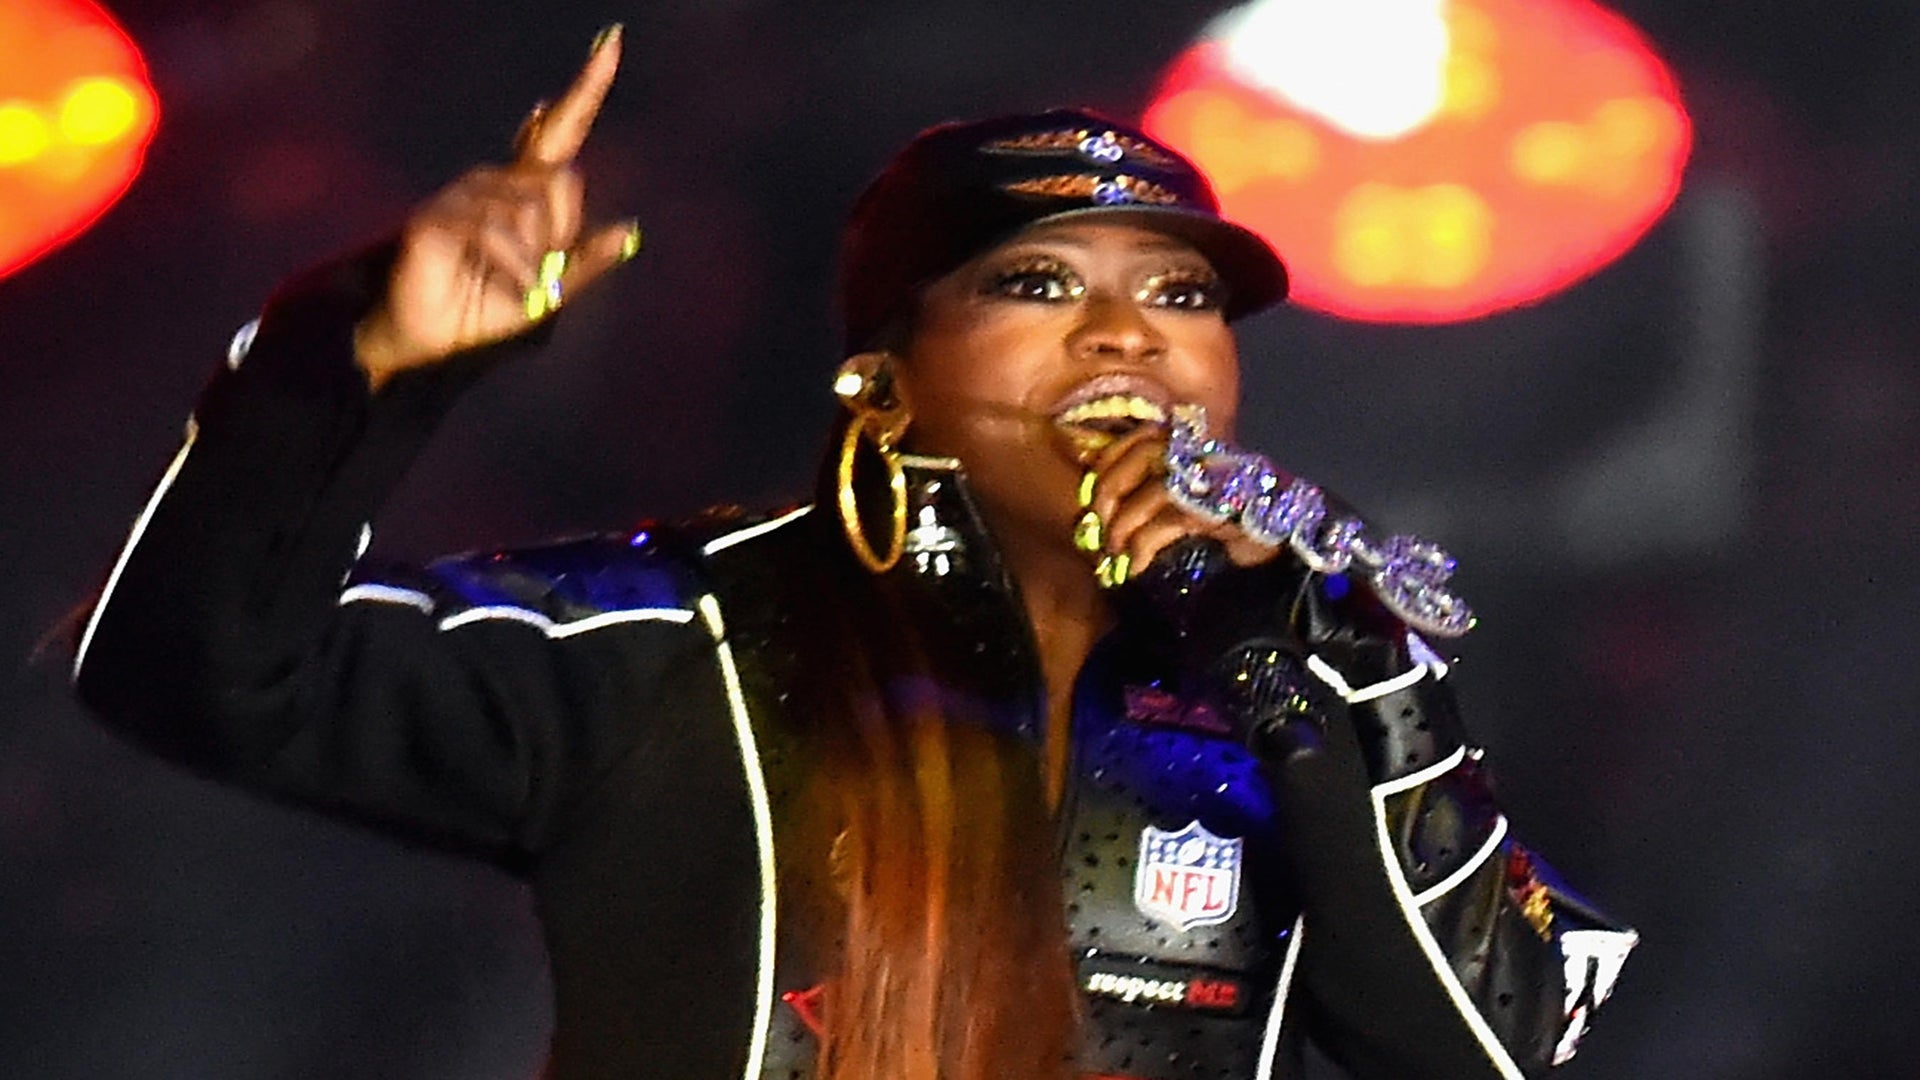 Missy Elliott Reveals She Was In The Hospital The Night Before Super Bowl Performance